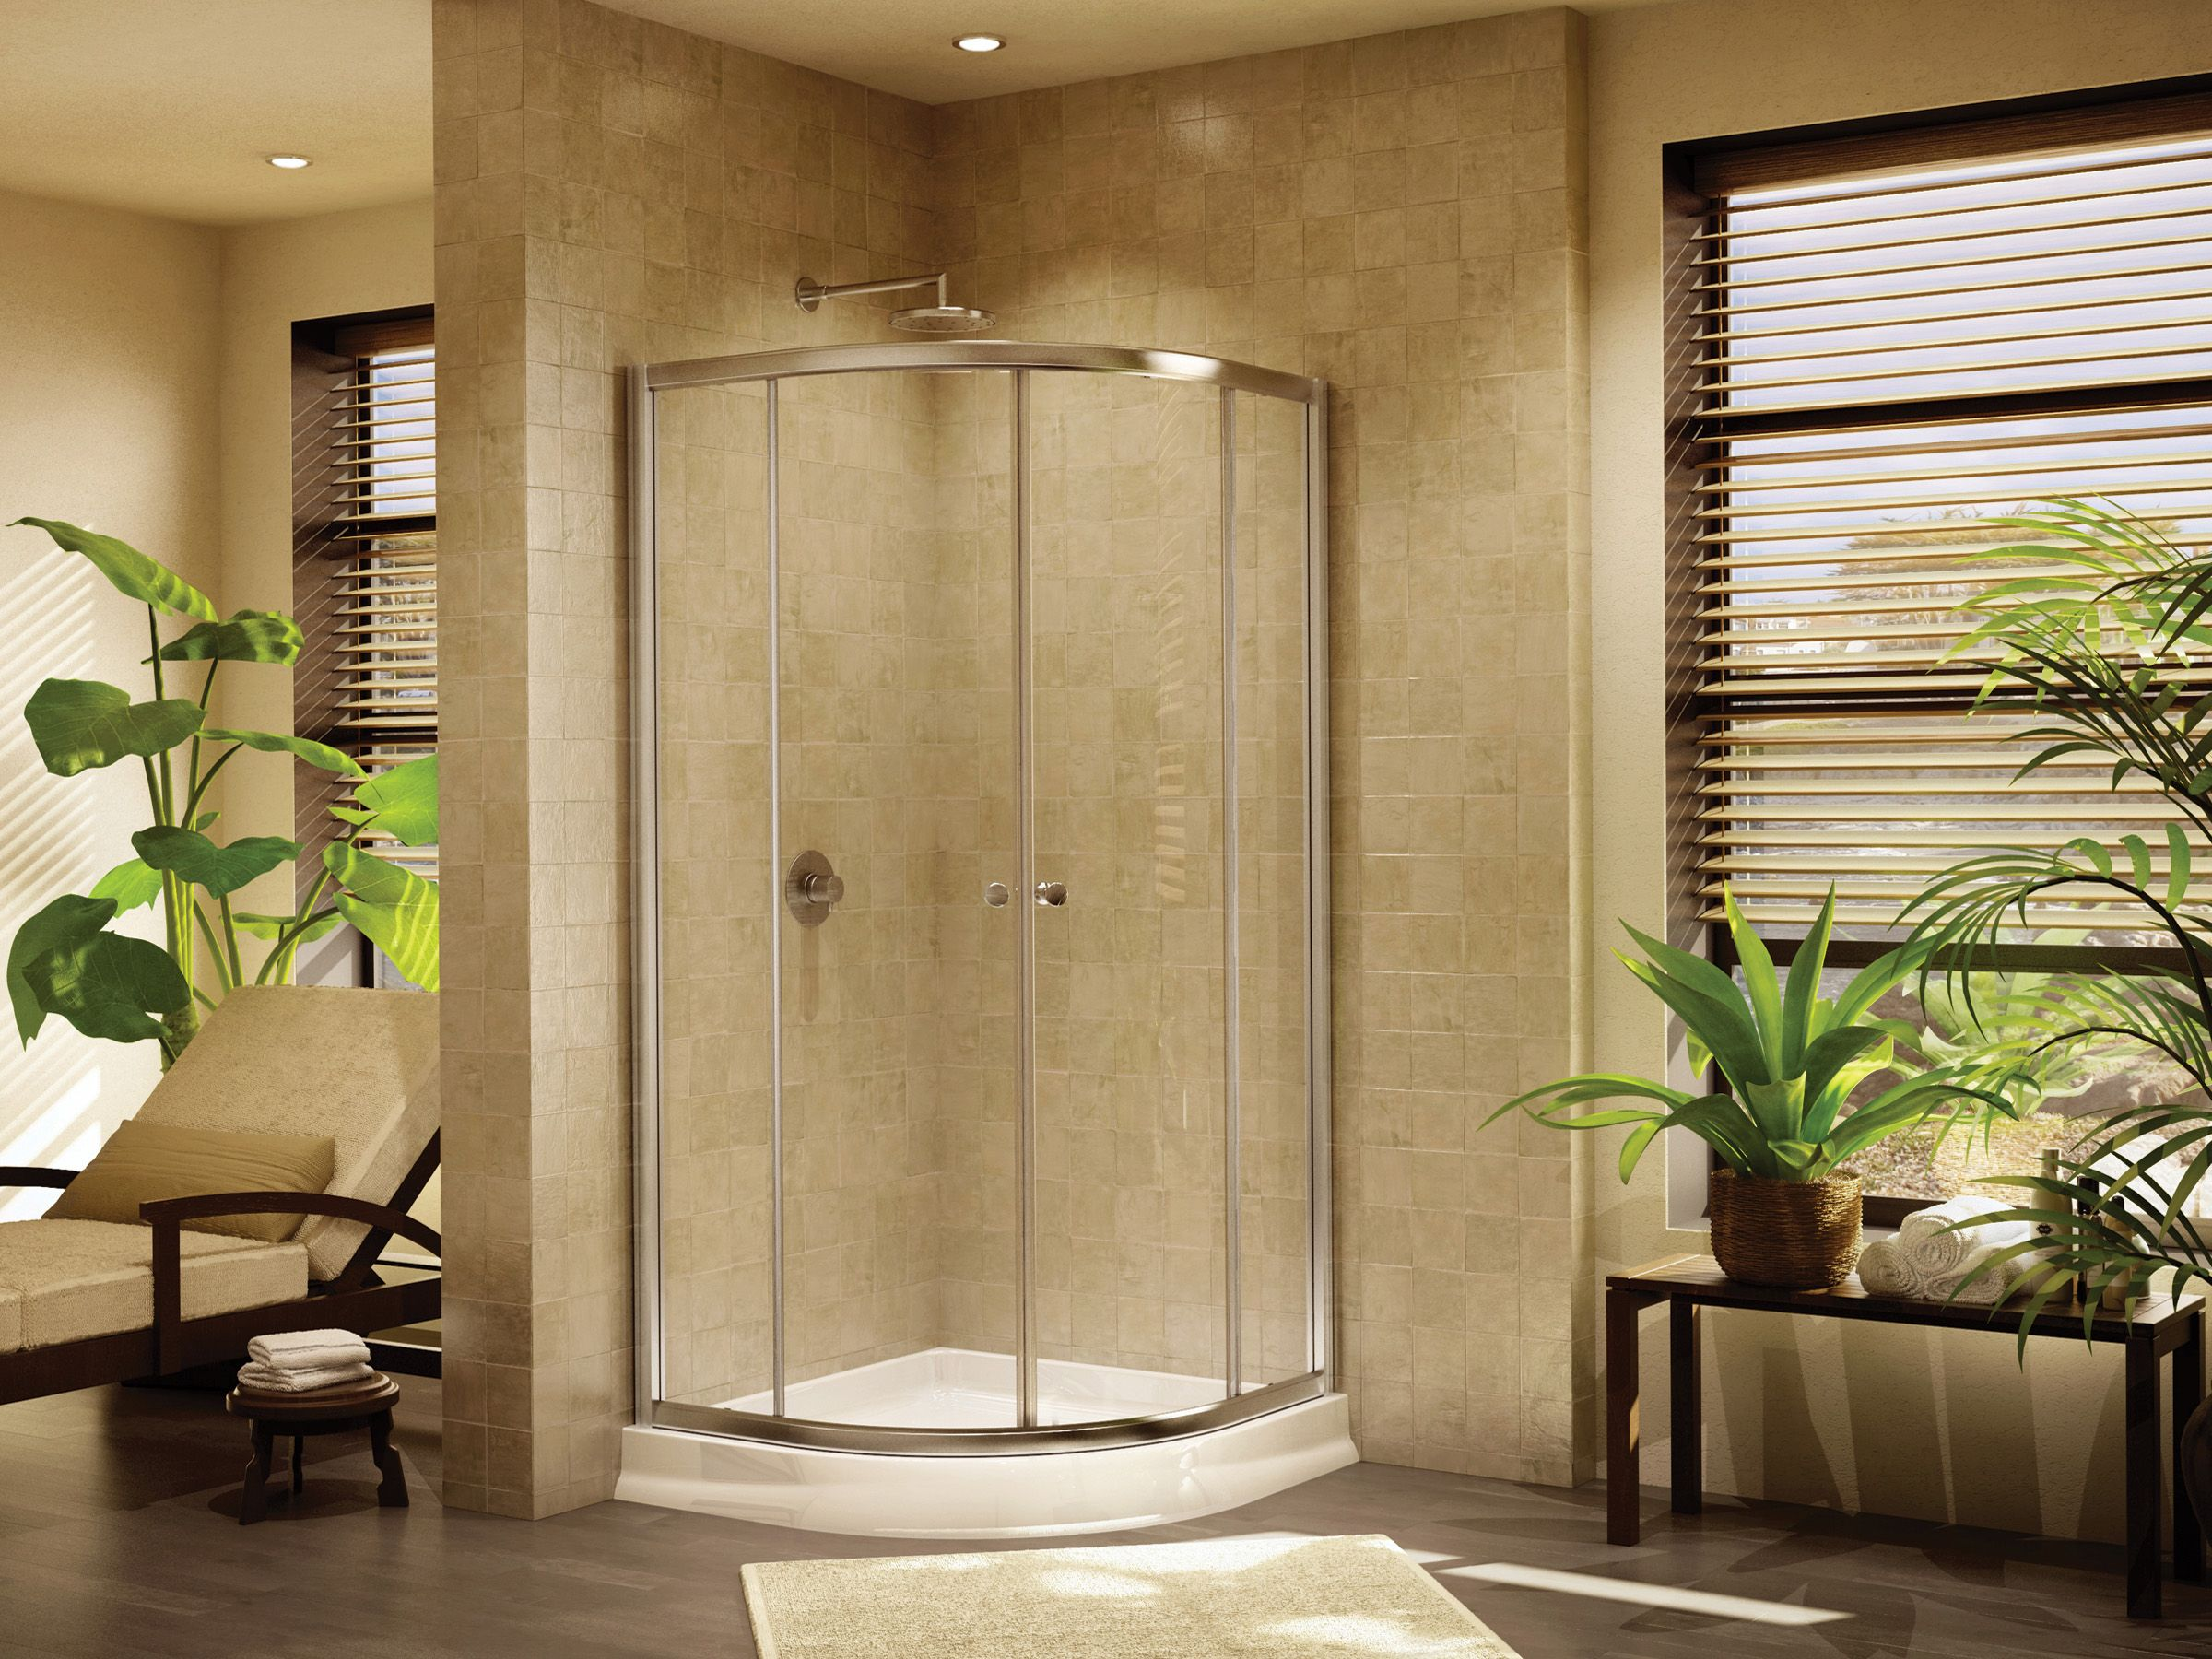 Stylish Semi Frameless Round Sliding Door By Fleurco Banyo Collection Round Shower Doors Shower Sliding Glass Door Shower Stall Enclosures